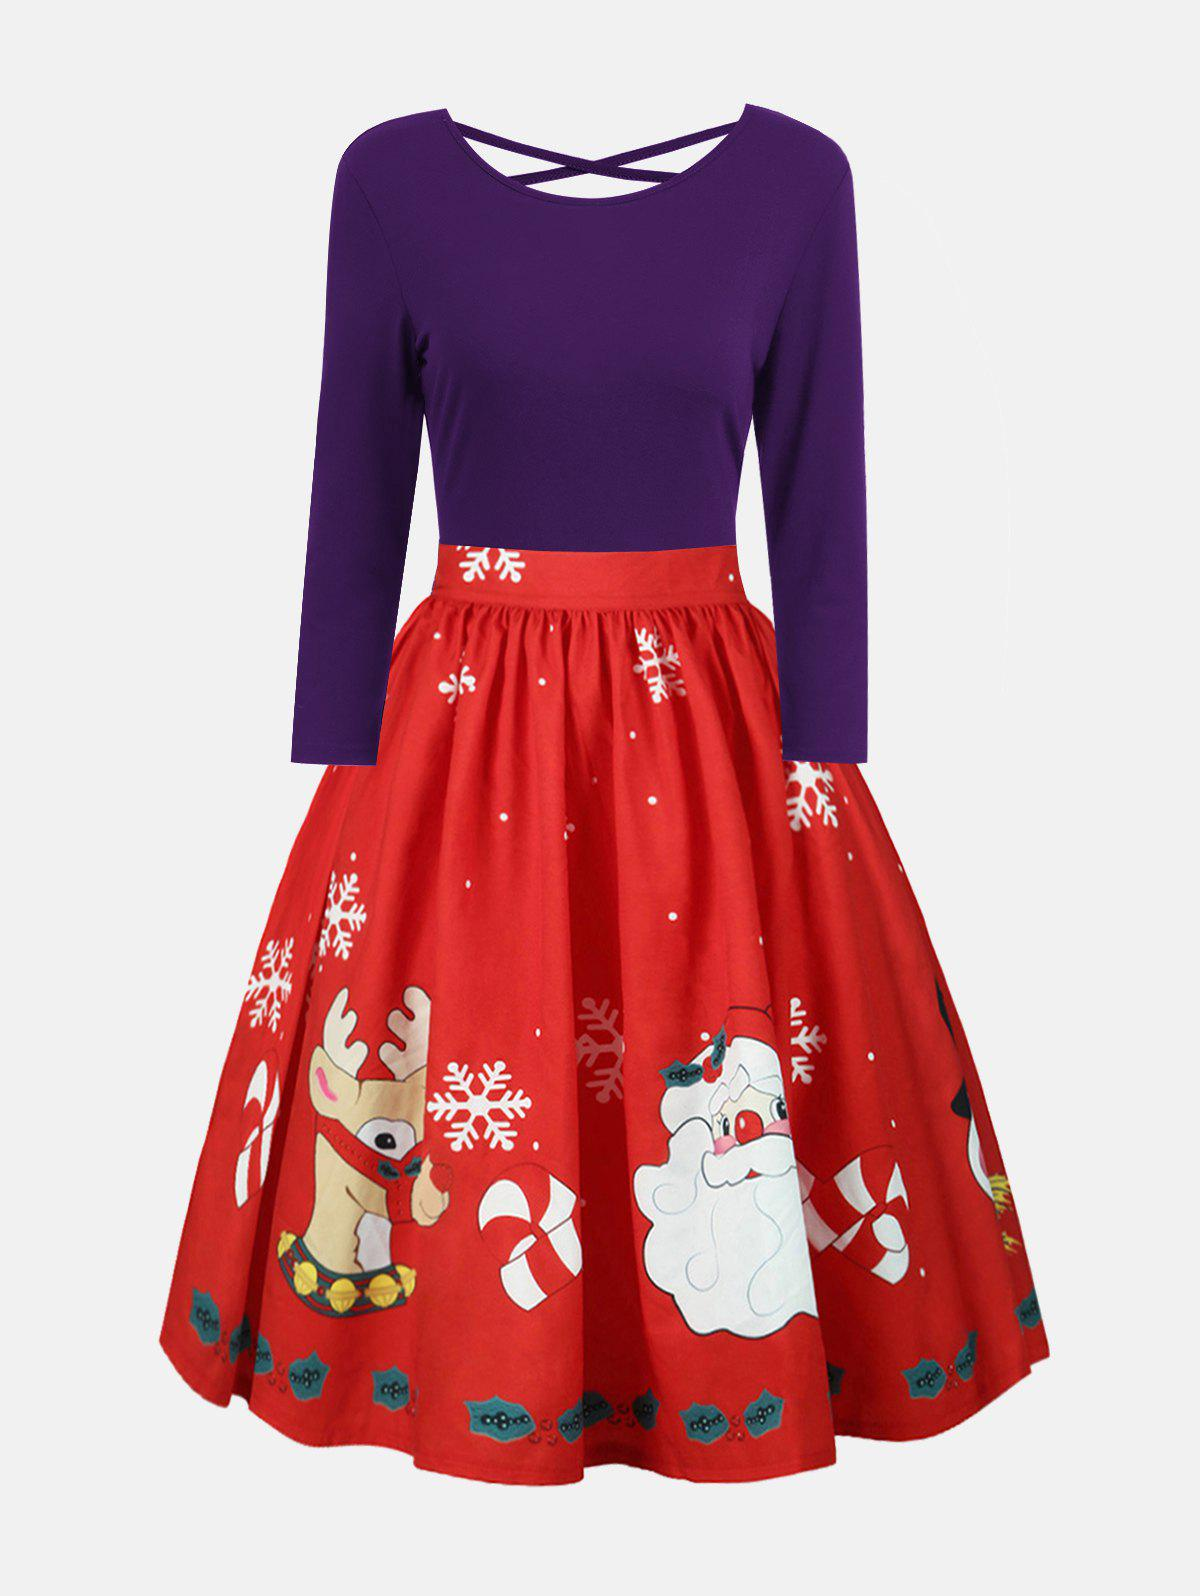 Plus Size Christmas Criss Cross Print DressWOMEN<br><br>Size: XL; Color: CONCORD; Style: Vintage; Material: Polyester; Silhouette: A-Line; Dresses Length: Mid-Calf; Neckline: Round Collar; Sleeve Length: Long Sleeves; Embellishment: Criss-Cross; Pattern Type: Print; With Belt: No; Season: Fall,Spring; Weight: 0.2700kg; Package Contents: 1 x Dress;